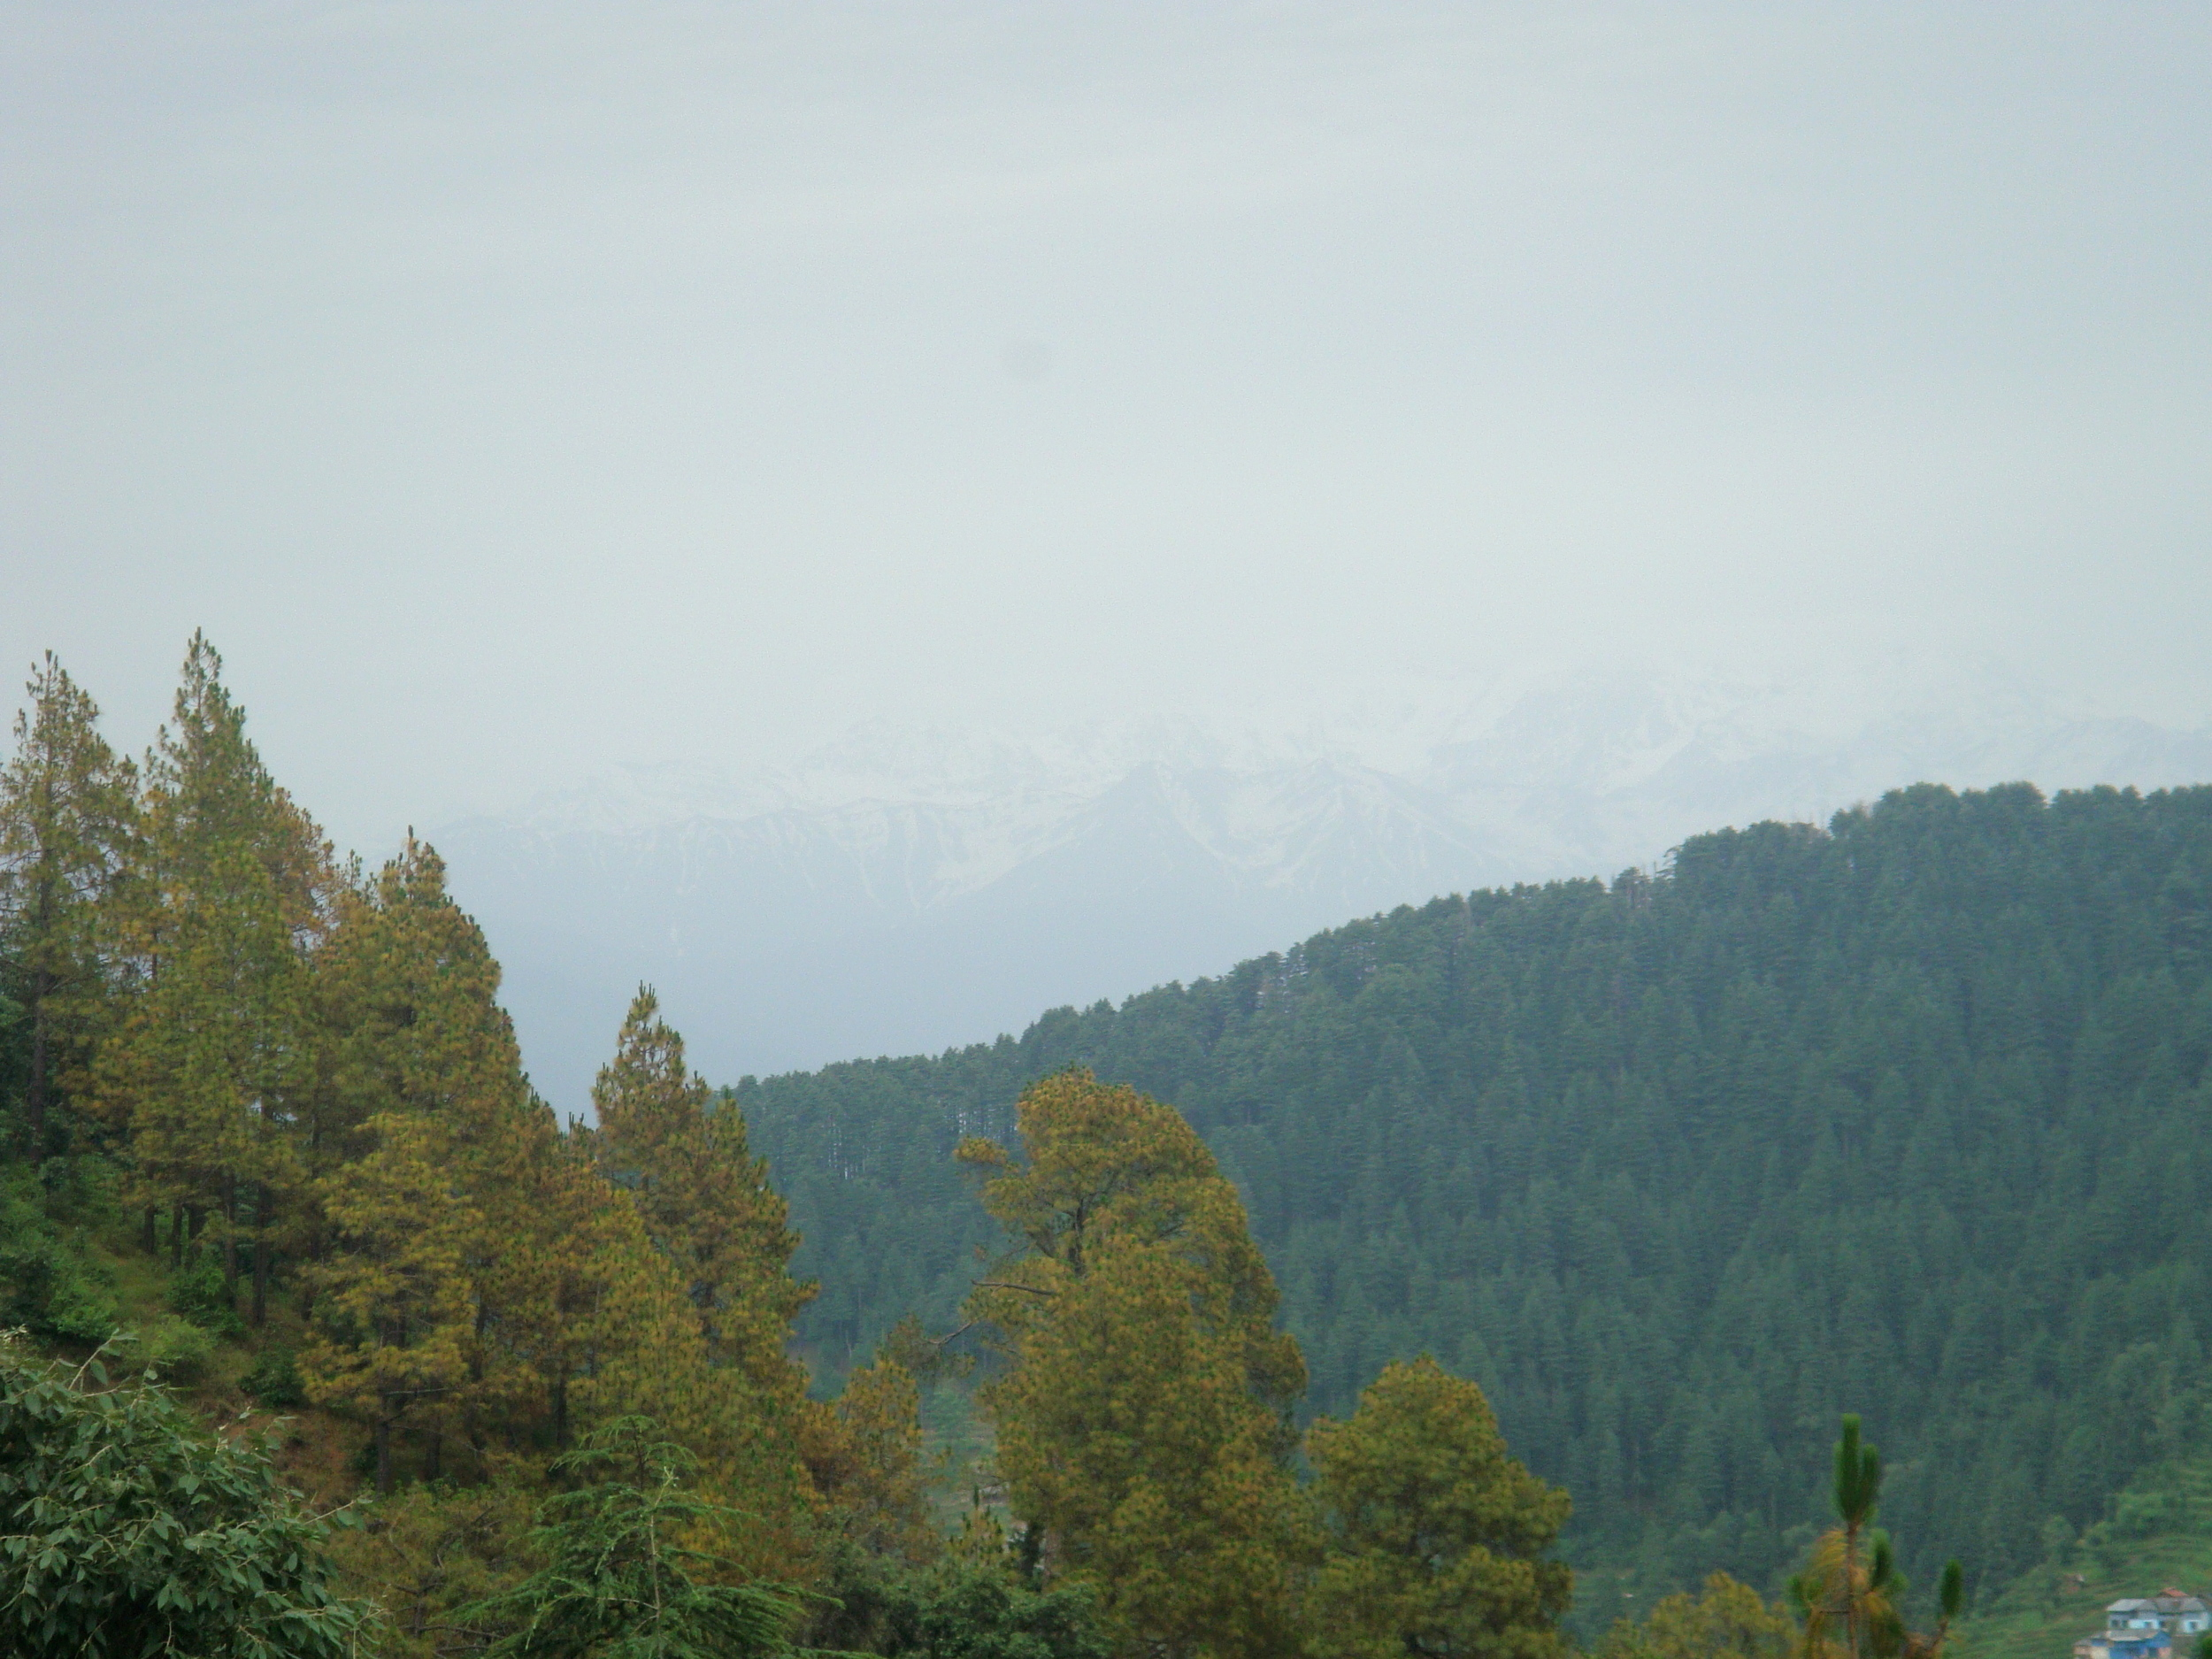 The Dauladhar Range at the horizon